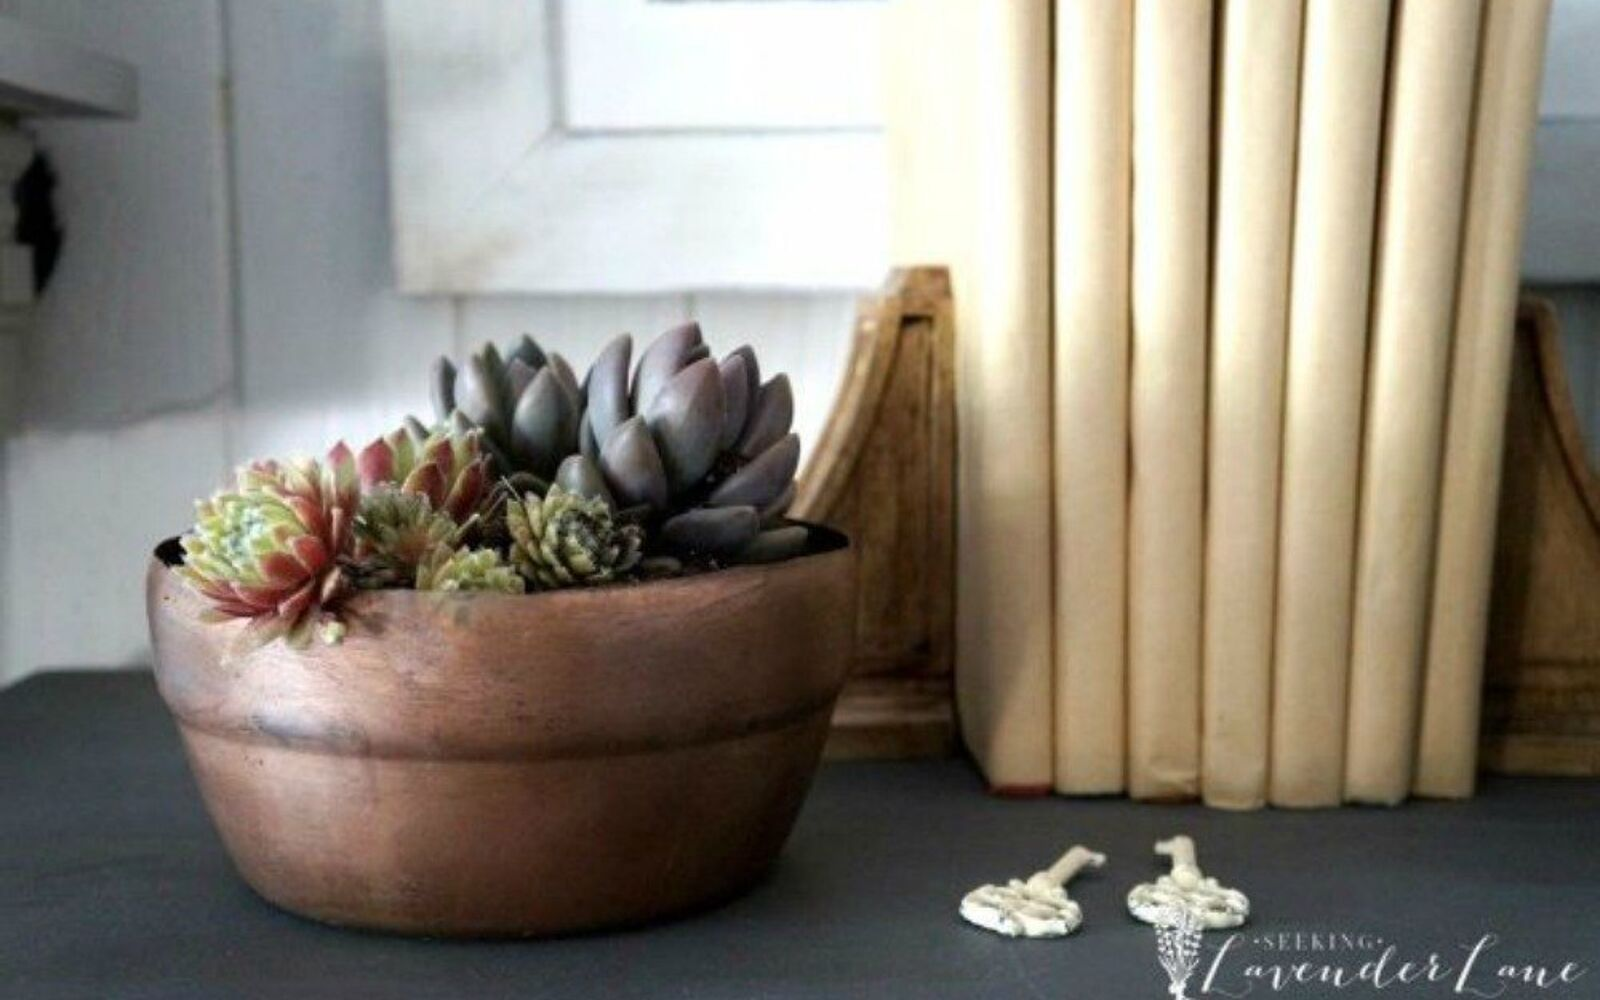 s why everyone is saving their empty food containers, repurposing upcycling, They re beautiful succulent planters